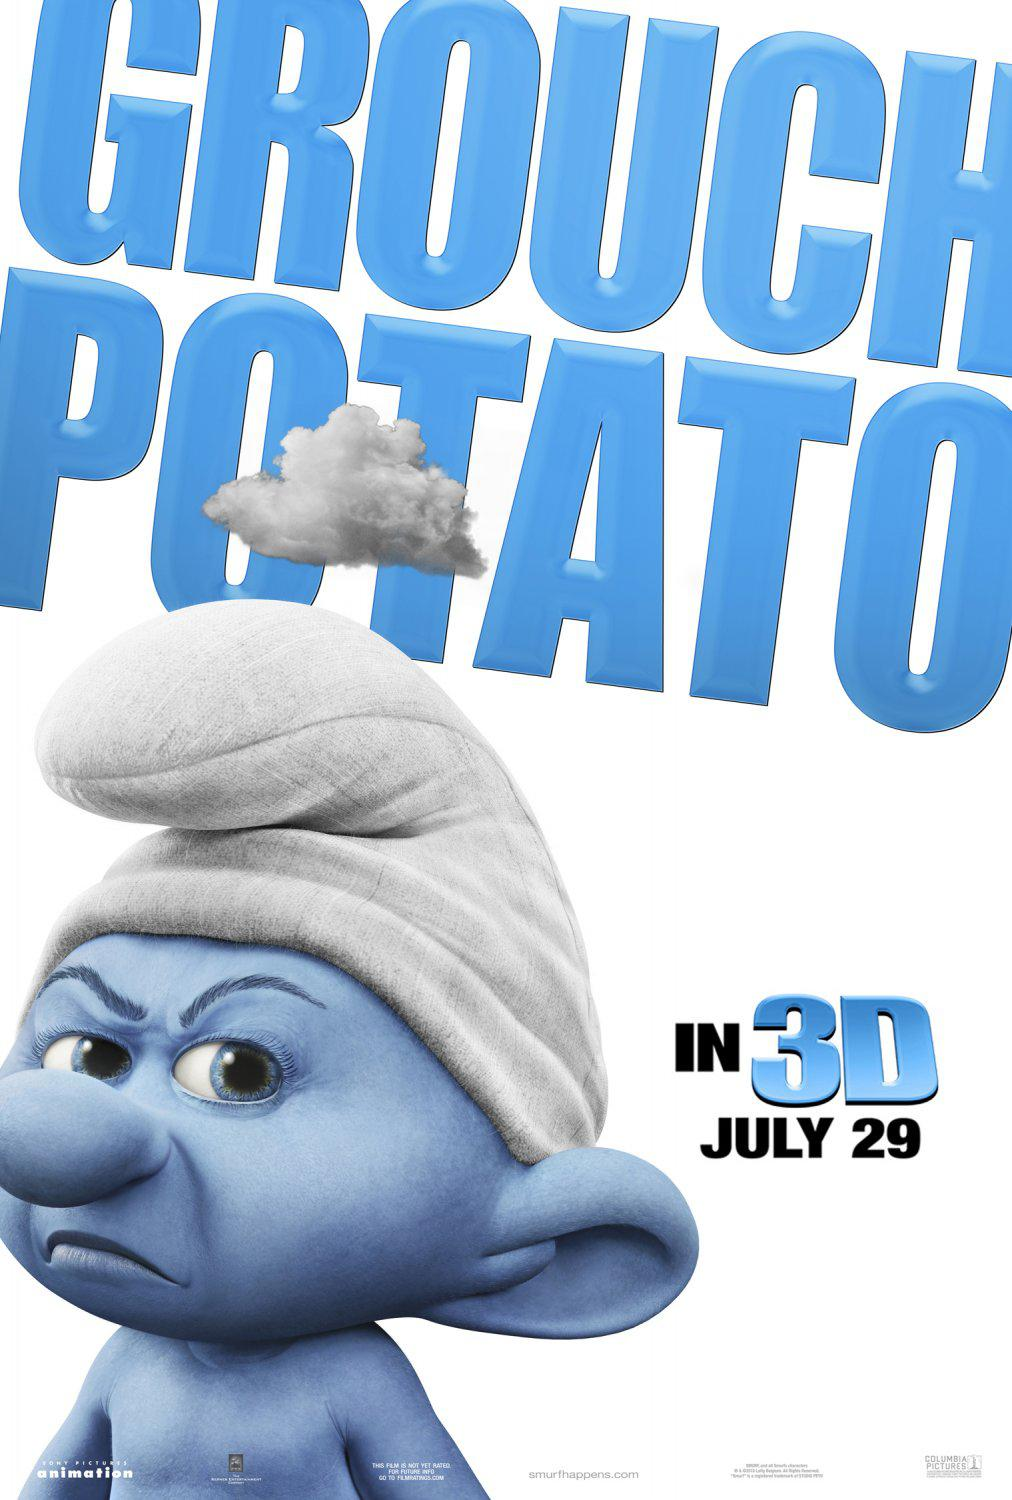 Film I Puffi in 3D - Movie Smurfs in 3D - Grouch Potato